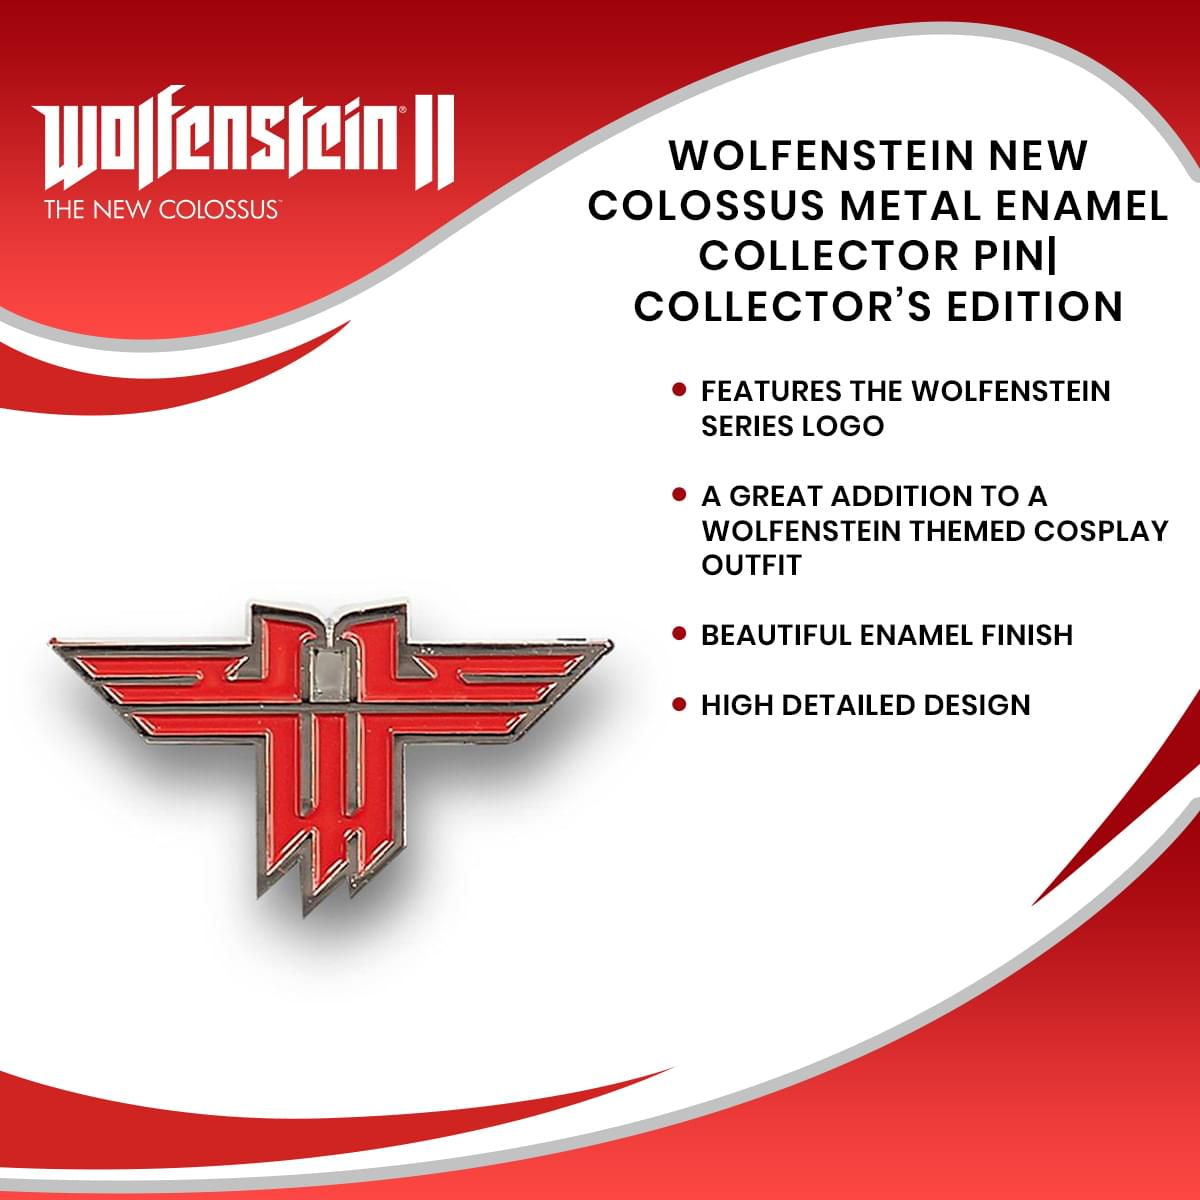 Wolfenstein New Colossus Metal Enamel Collector Pin| Collector's Edition